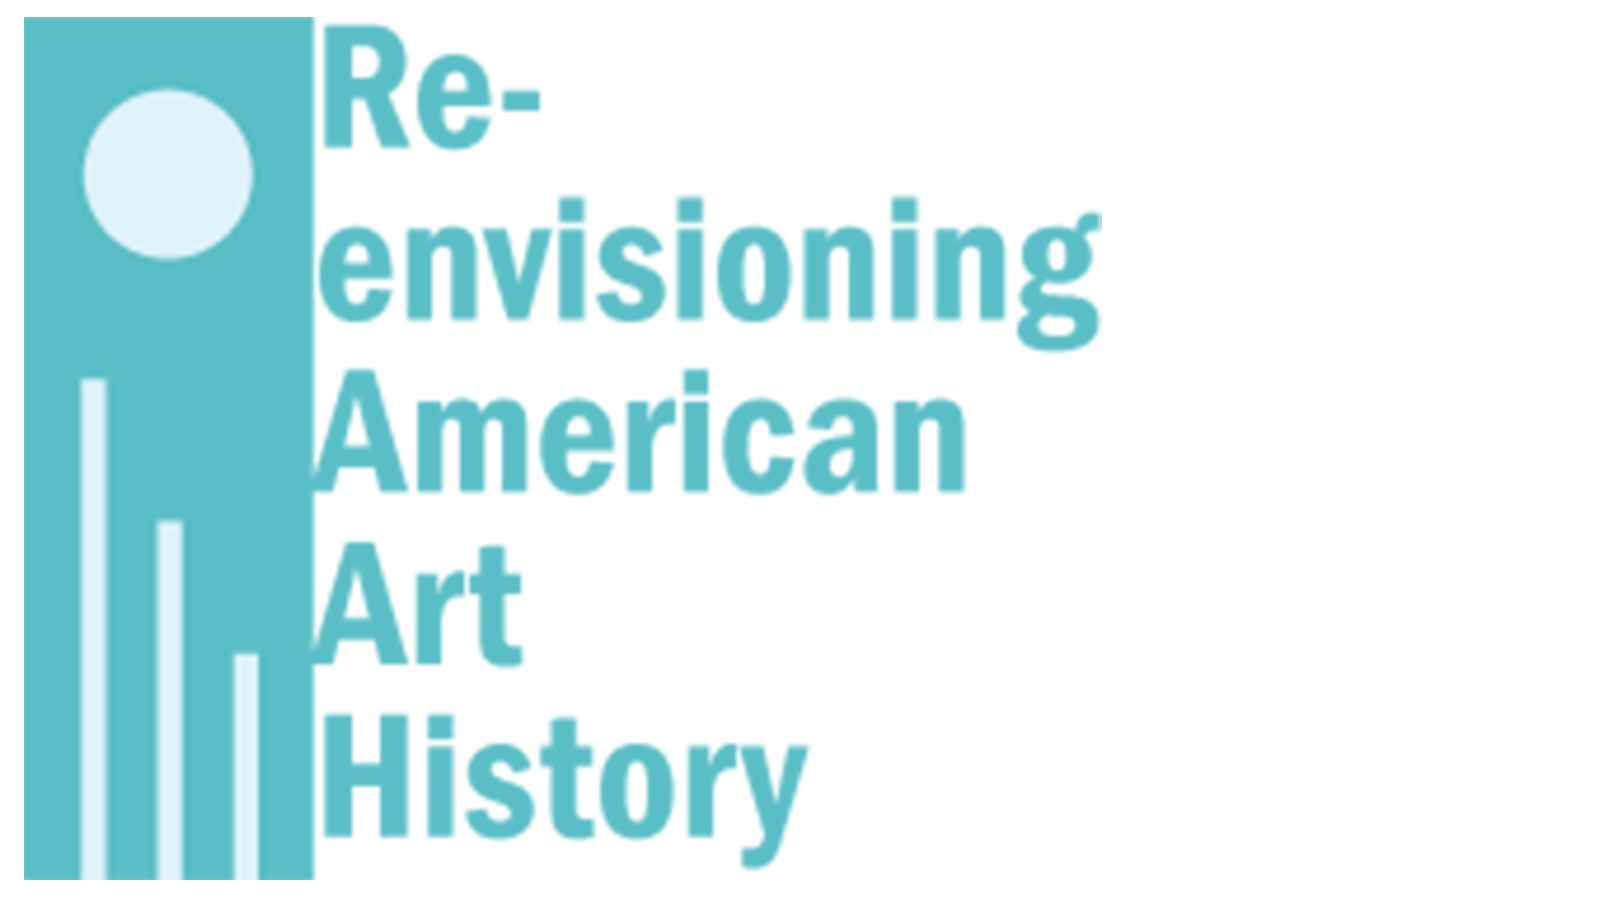 Logo for Re-envisioning American Art History in teal and white